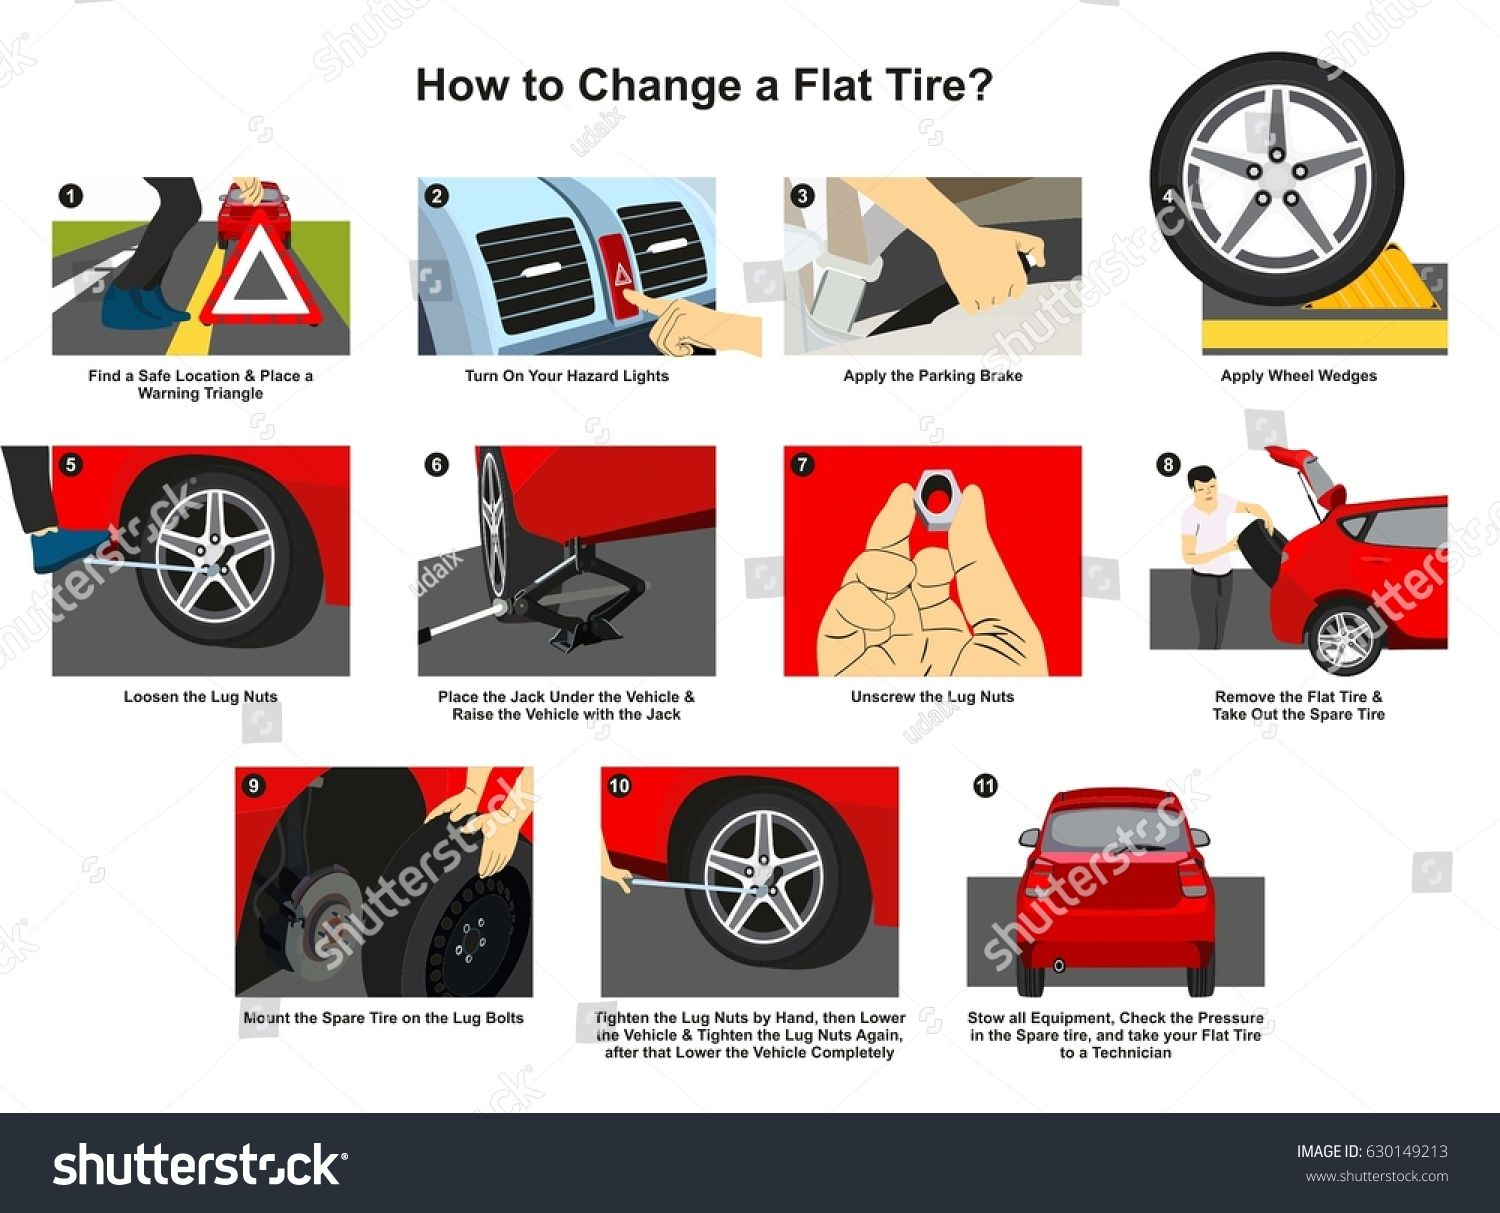 How To Change A Flat Tire Infographic Diagram With Detailed